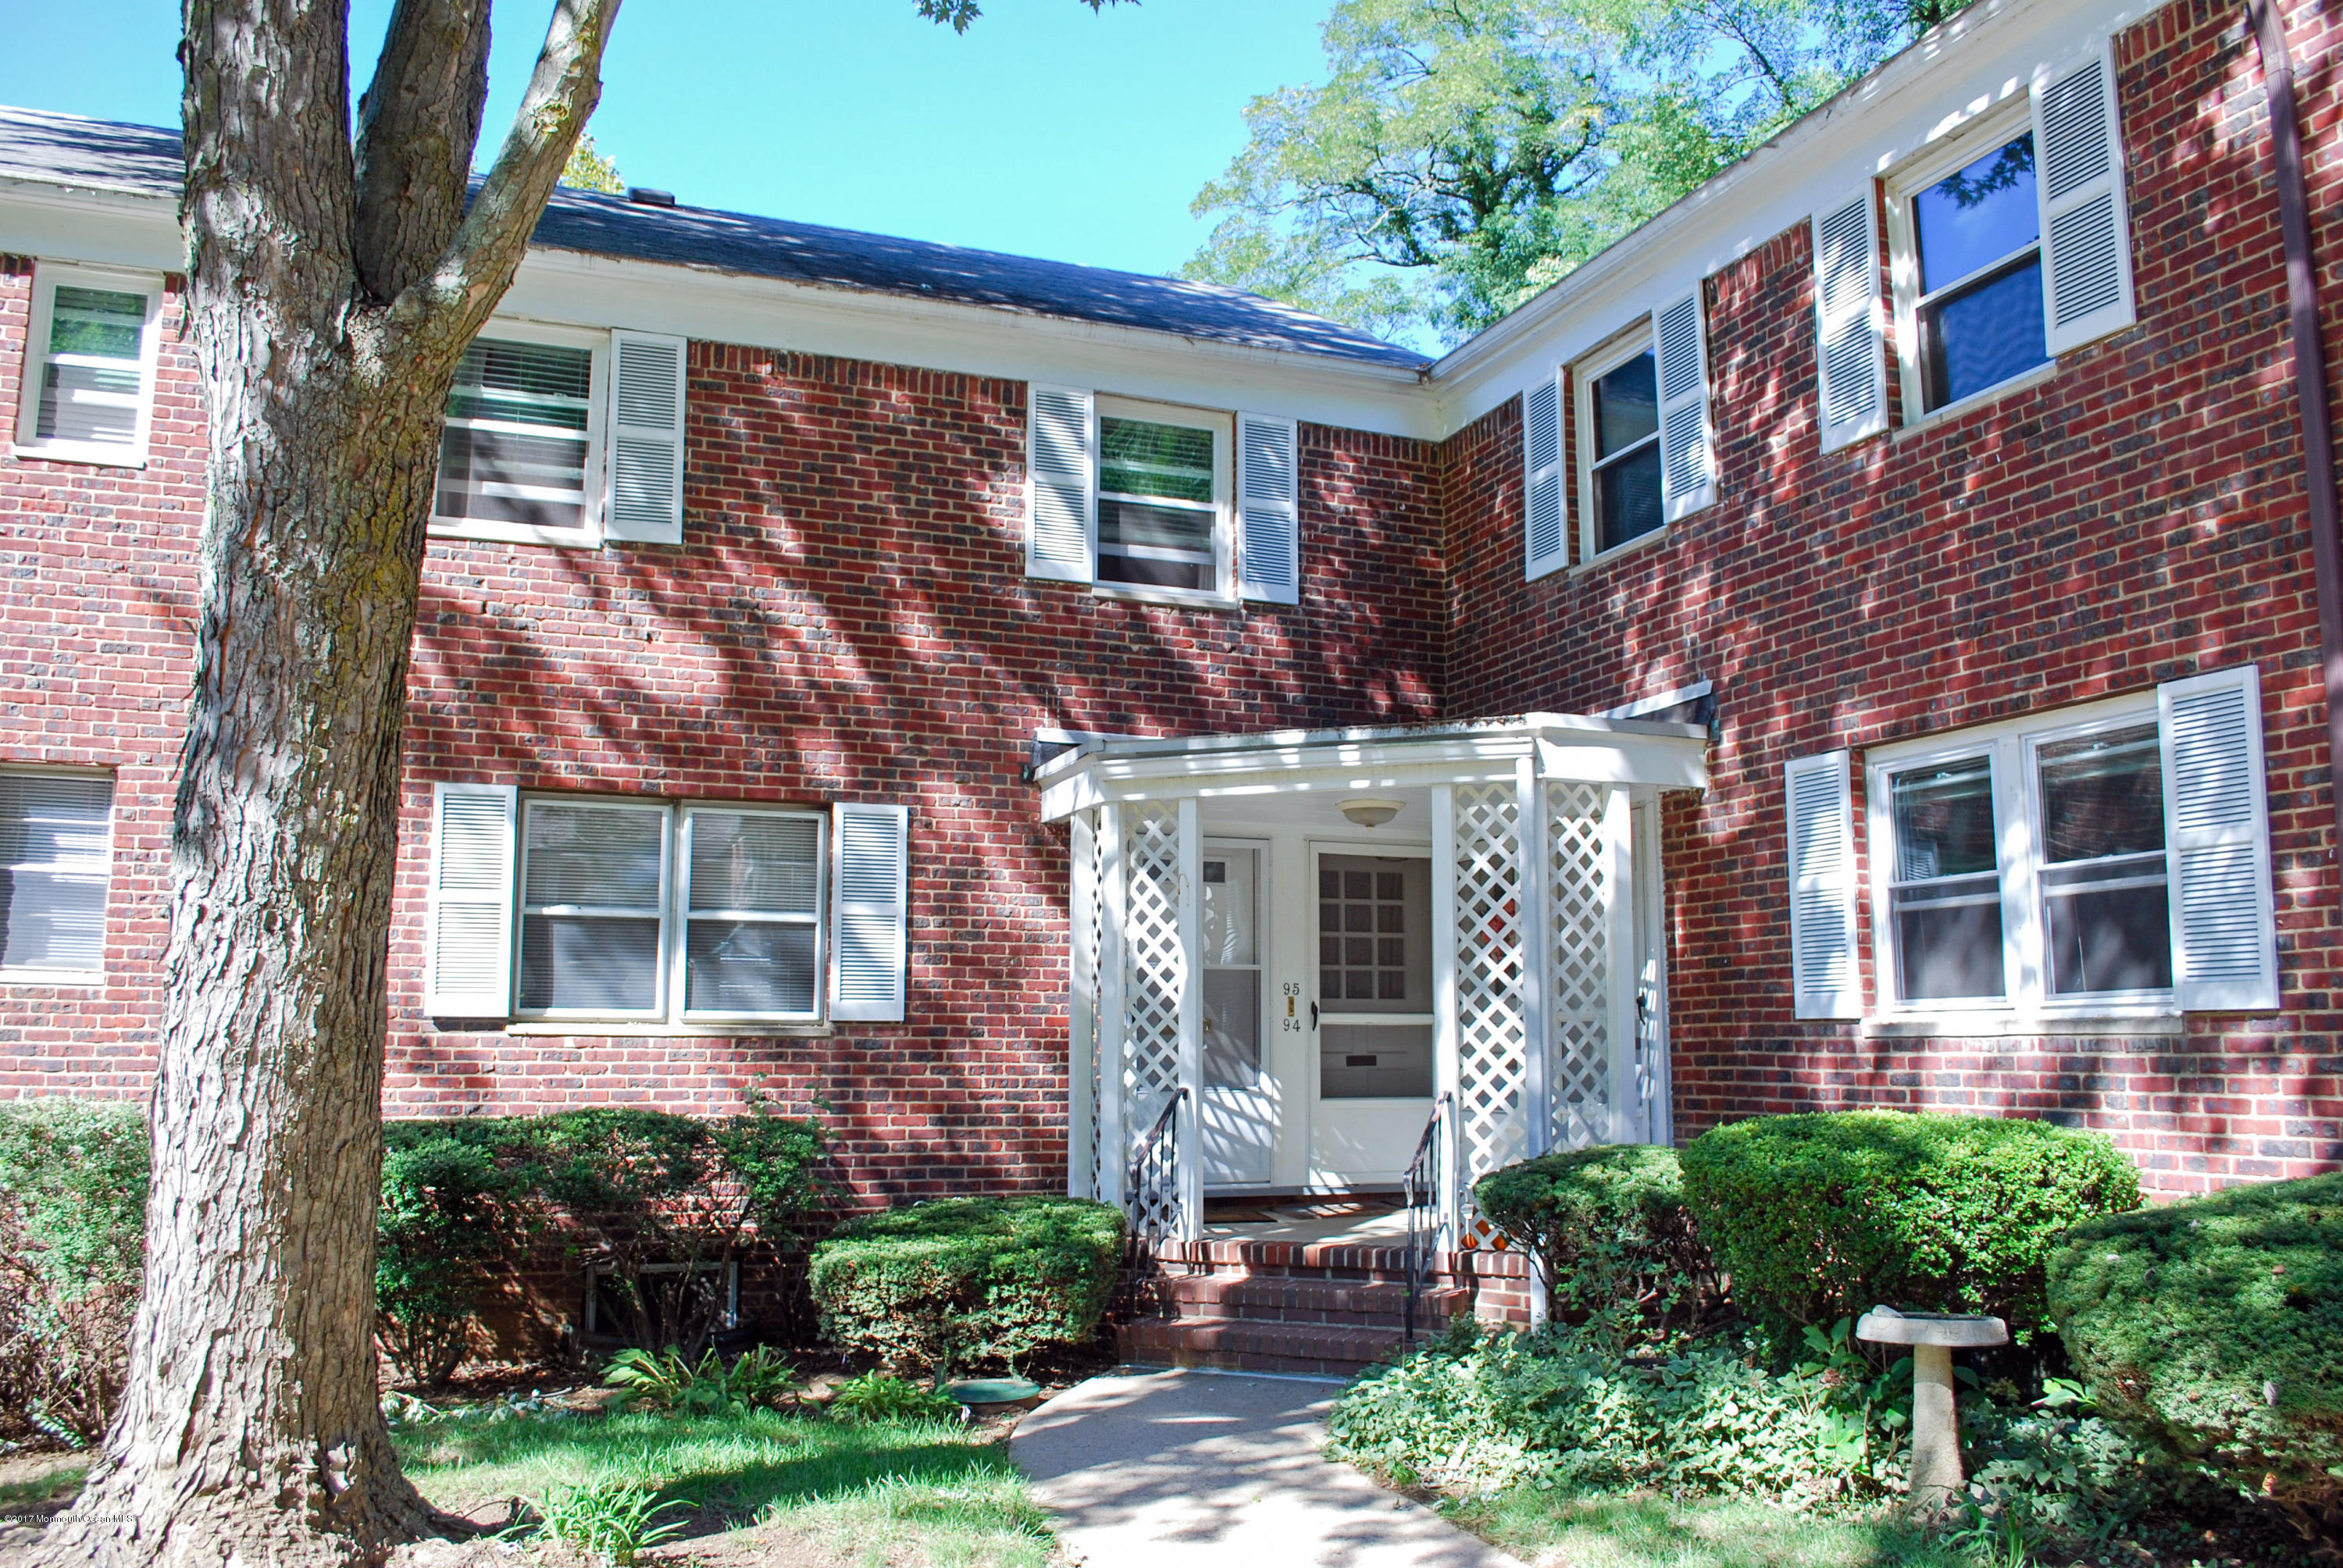 94 MANOR DRIVE, RED BANK, NJ 07701